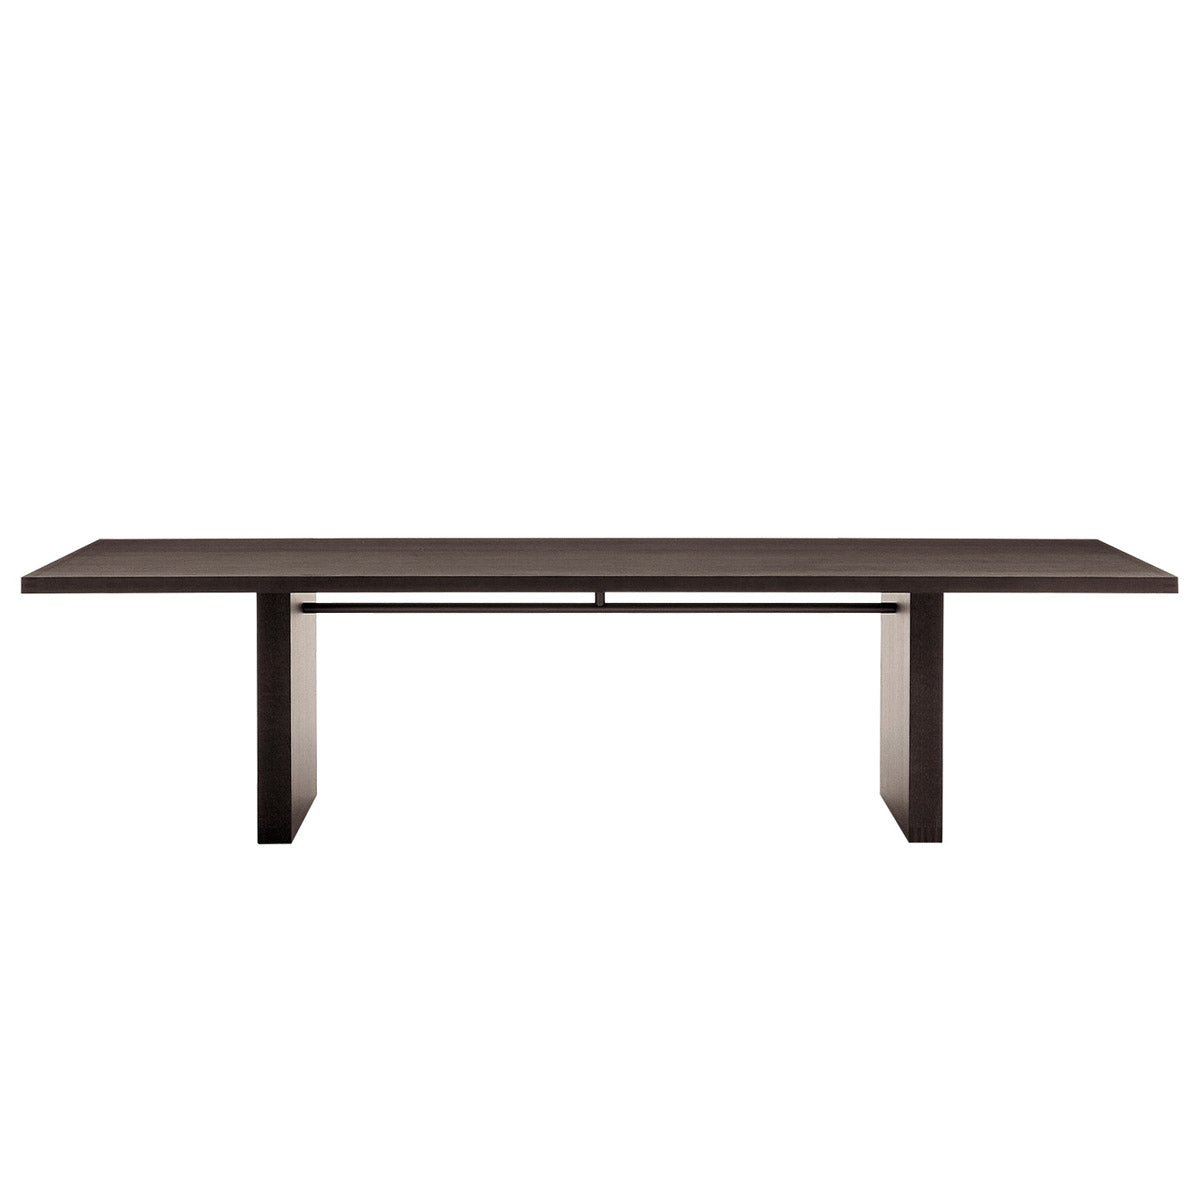 Simposio Table